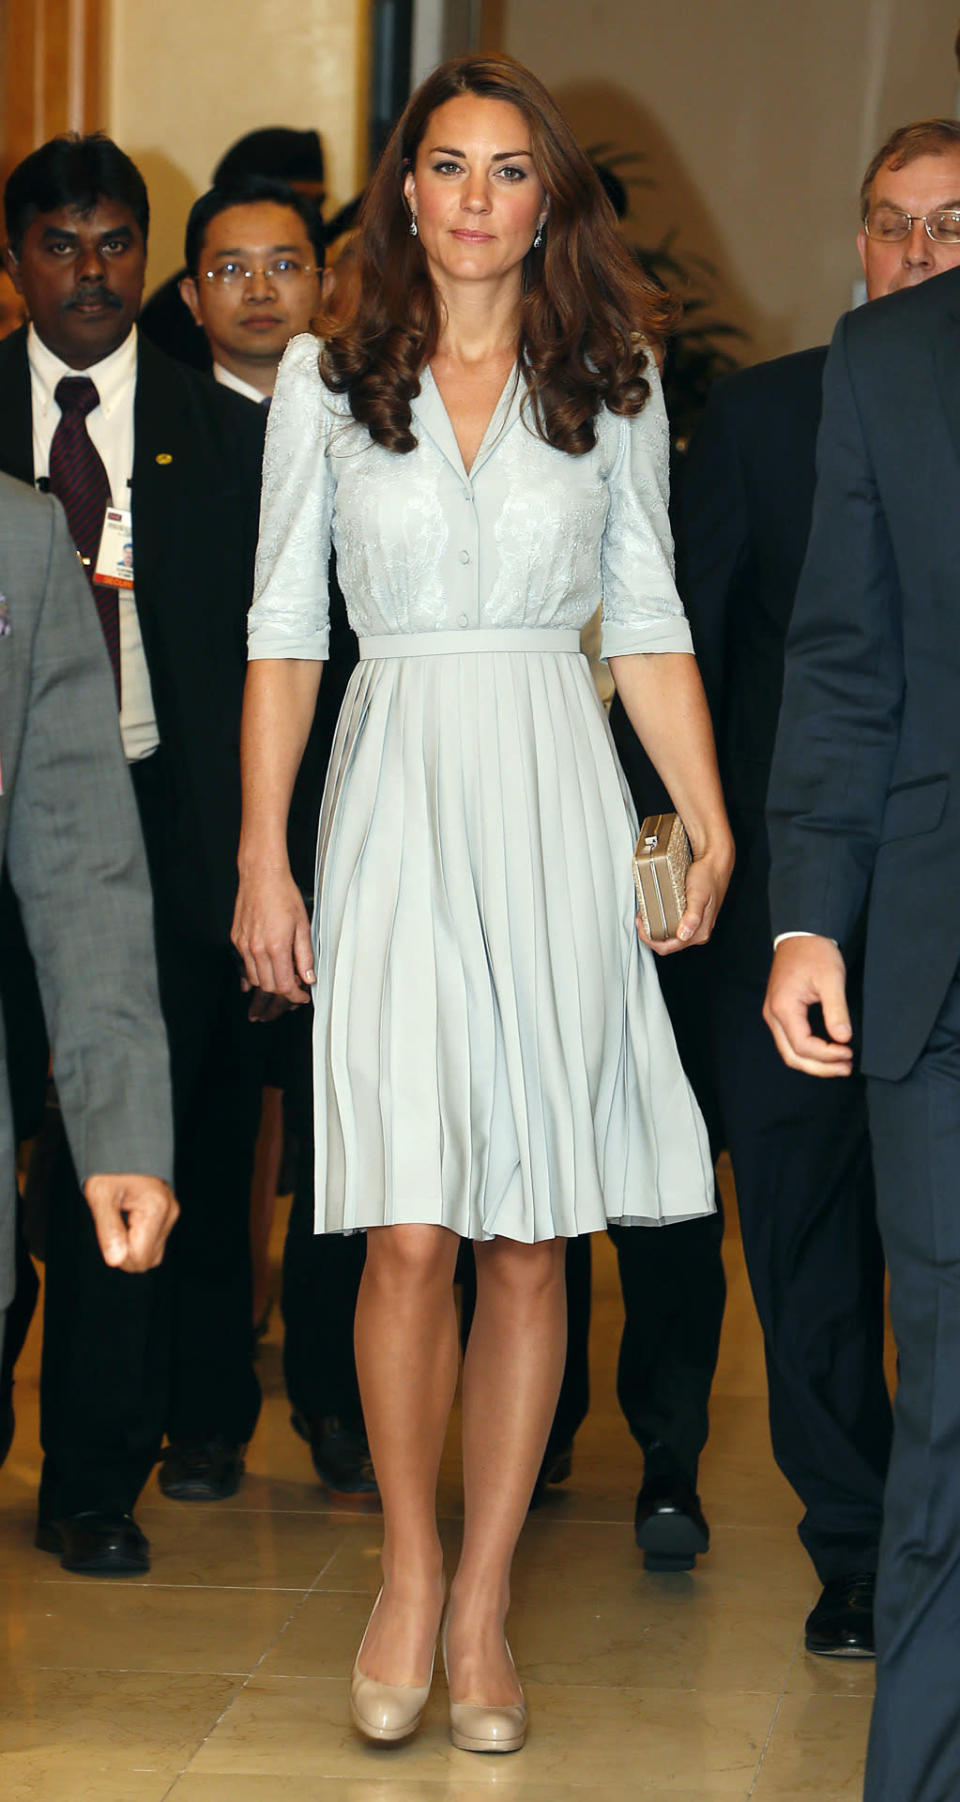 <p>For her arrival in Kuala Lumpur, Kate donned a duck egg blue dress by Jenny Packham along with nude L.K. Bennett pumps.</p><p><i>[Photo: PA]</i></p>